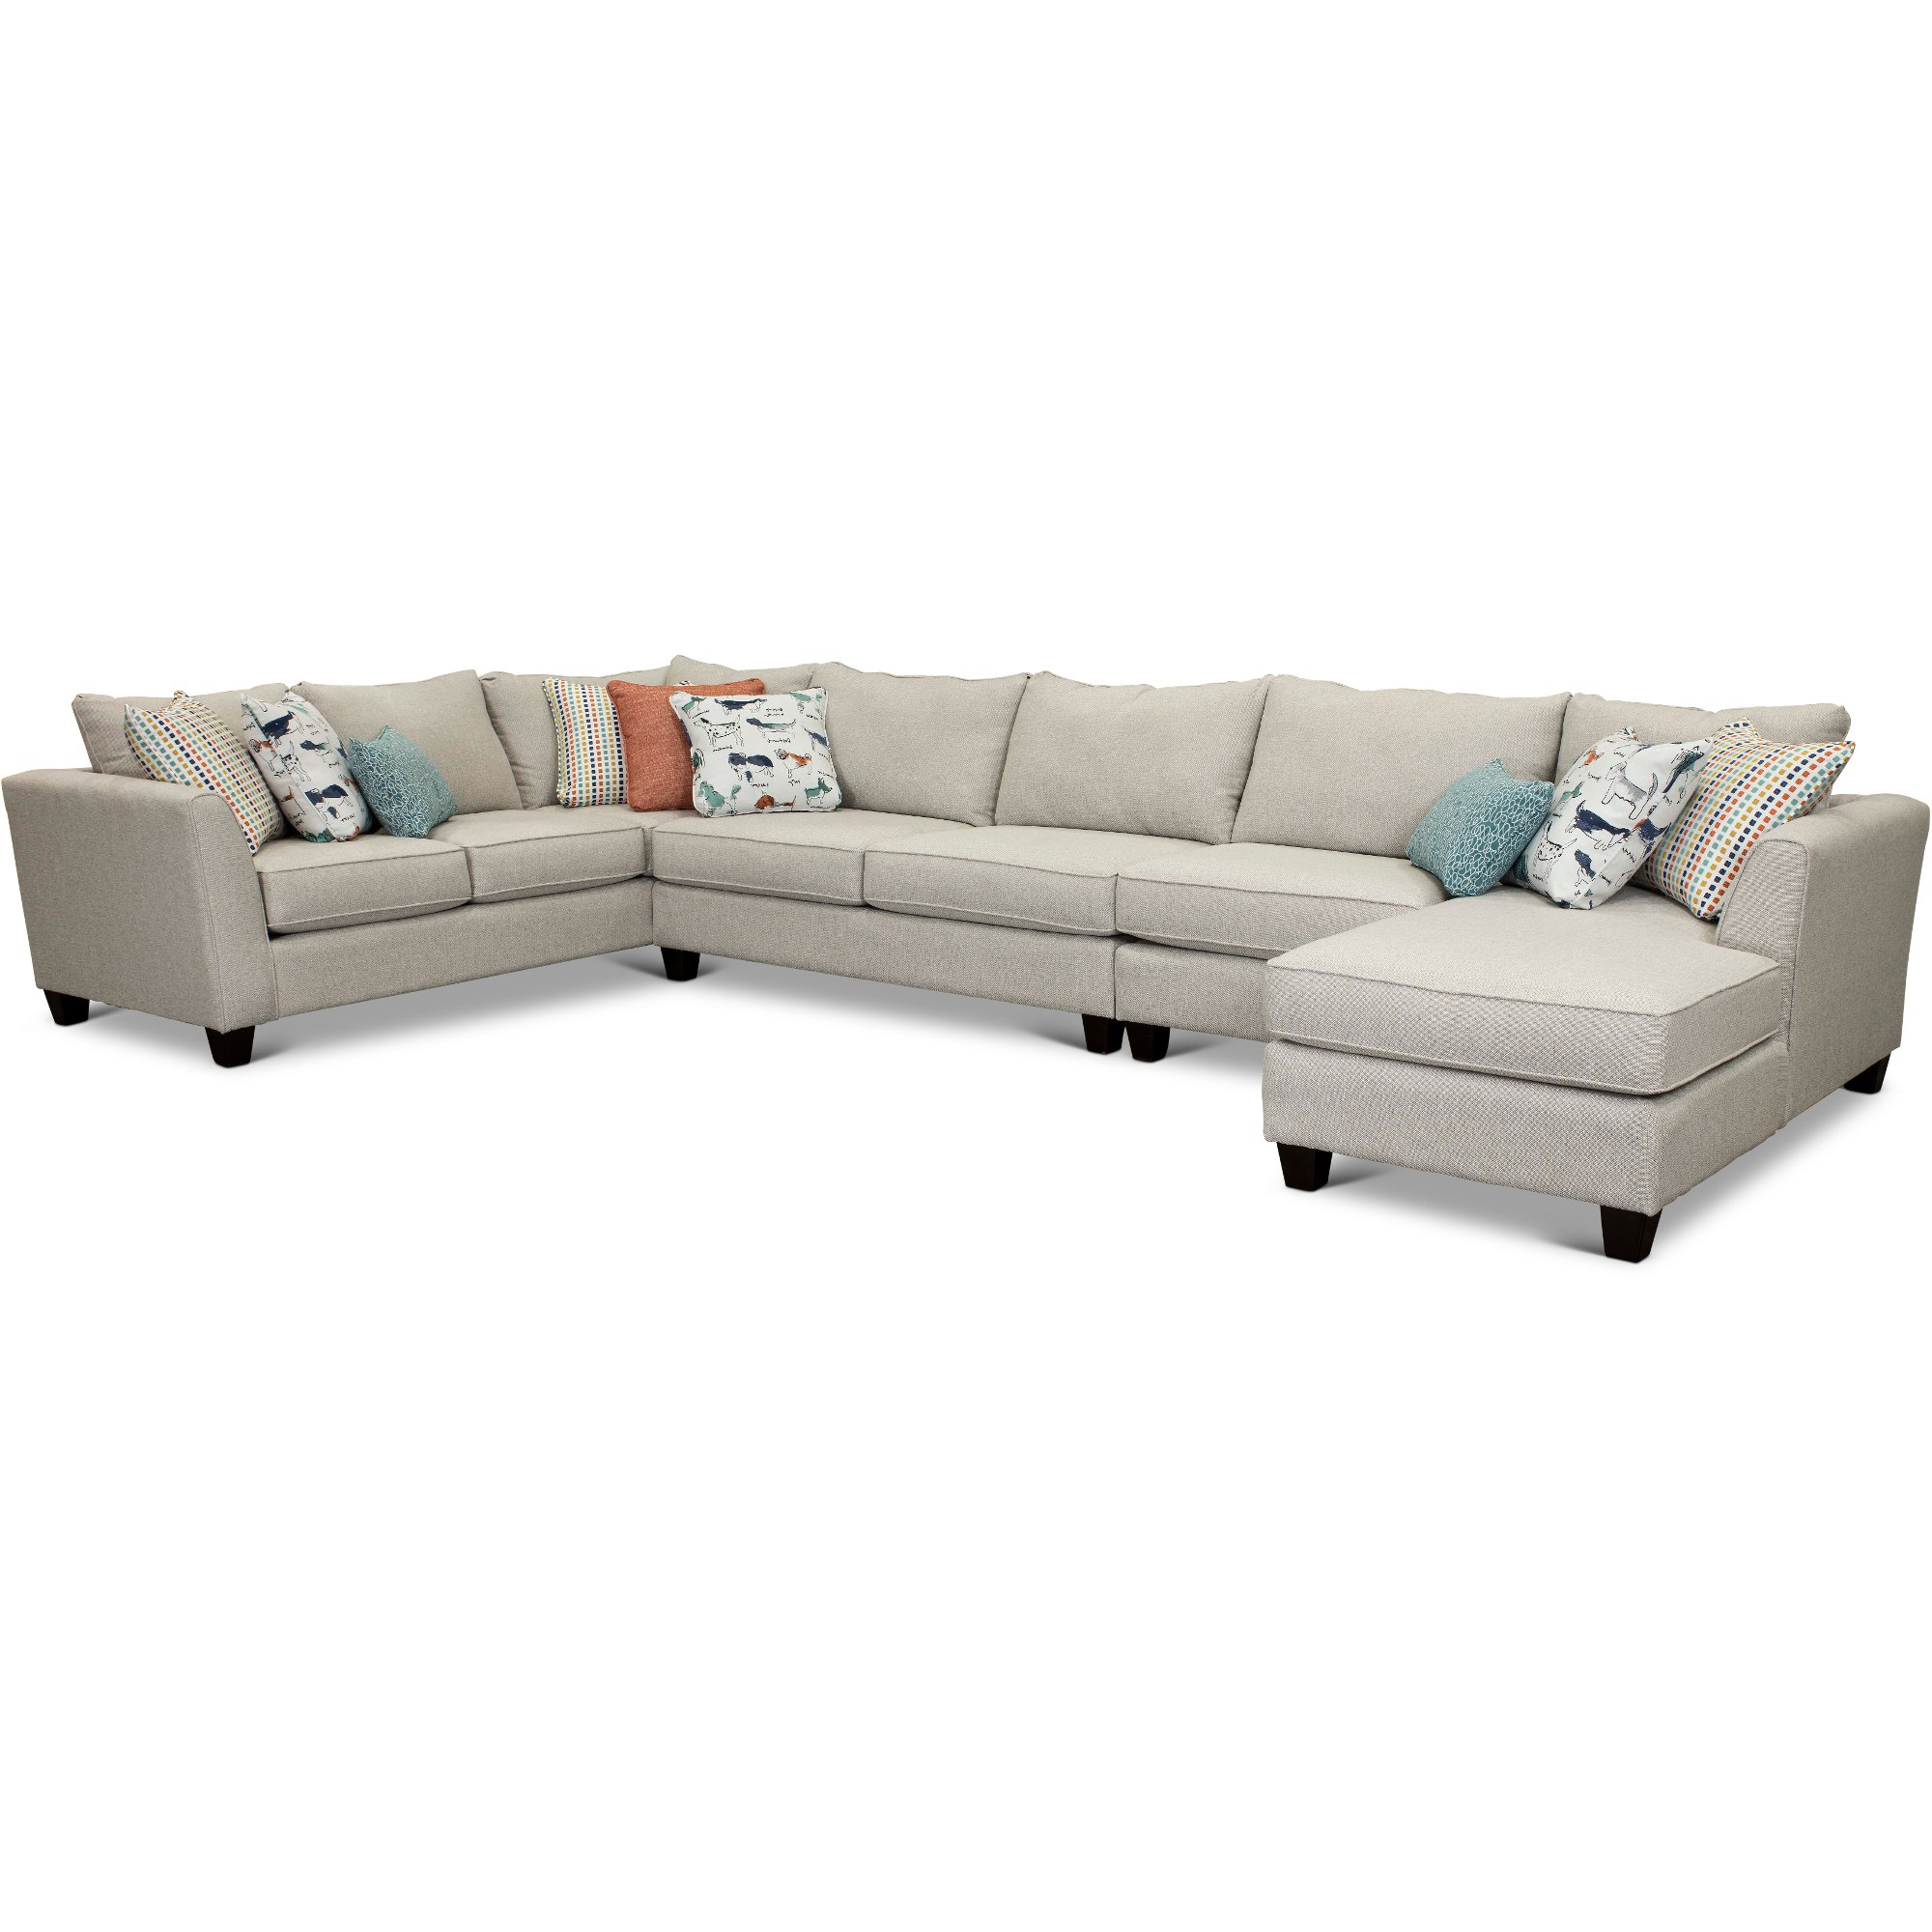 Stone 4 Piece Sectional Sofa with RAF Chaise - Homecoming ...